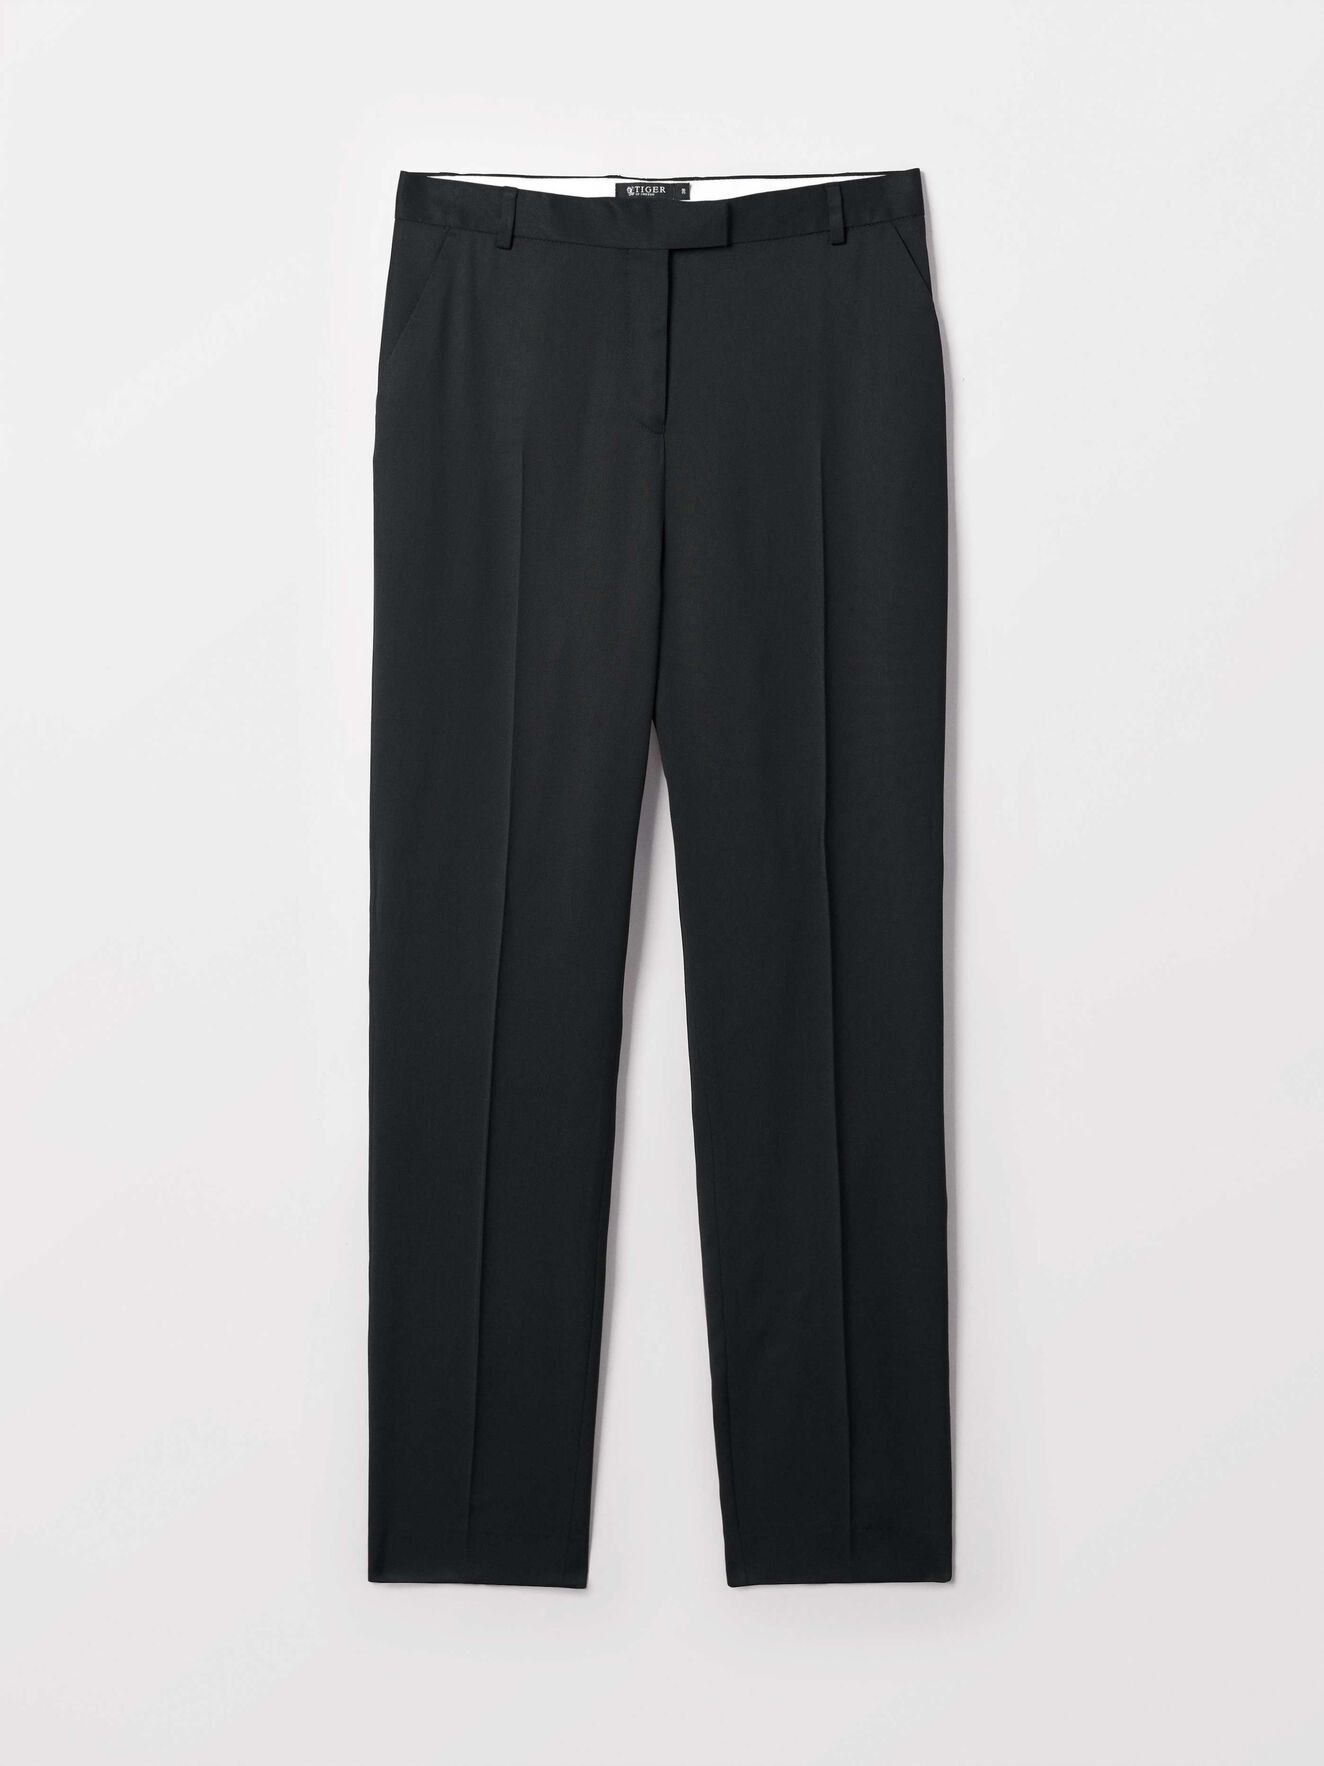 Loanella Trousers in Midnight Black from Tiger of Sweden